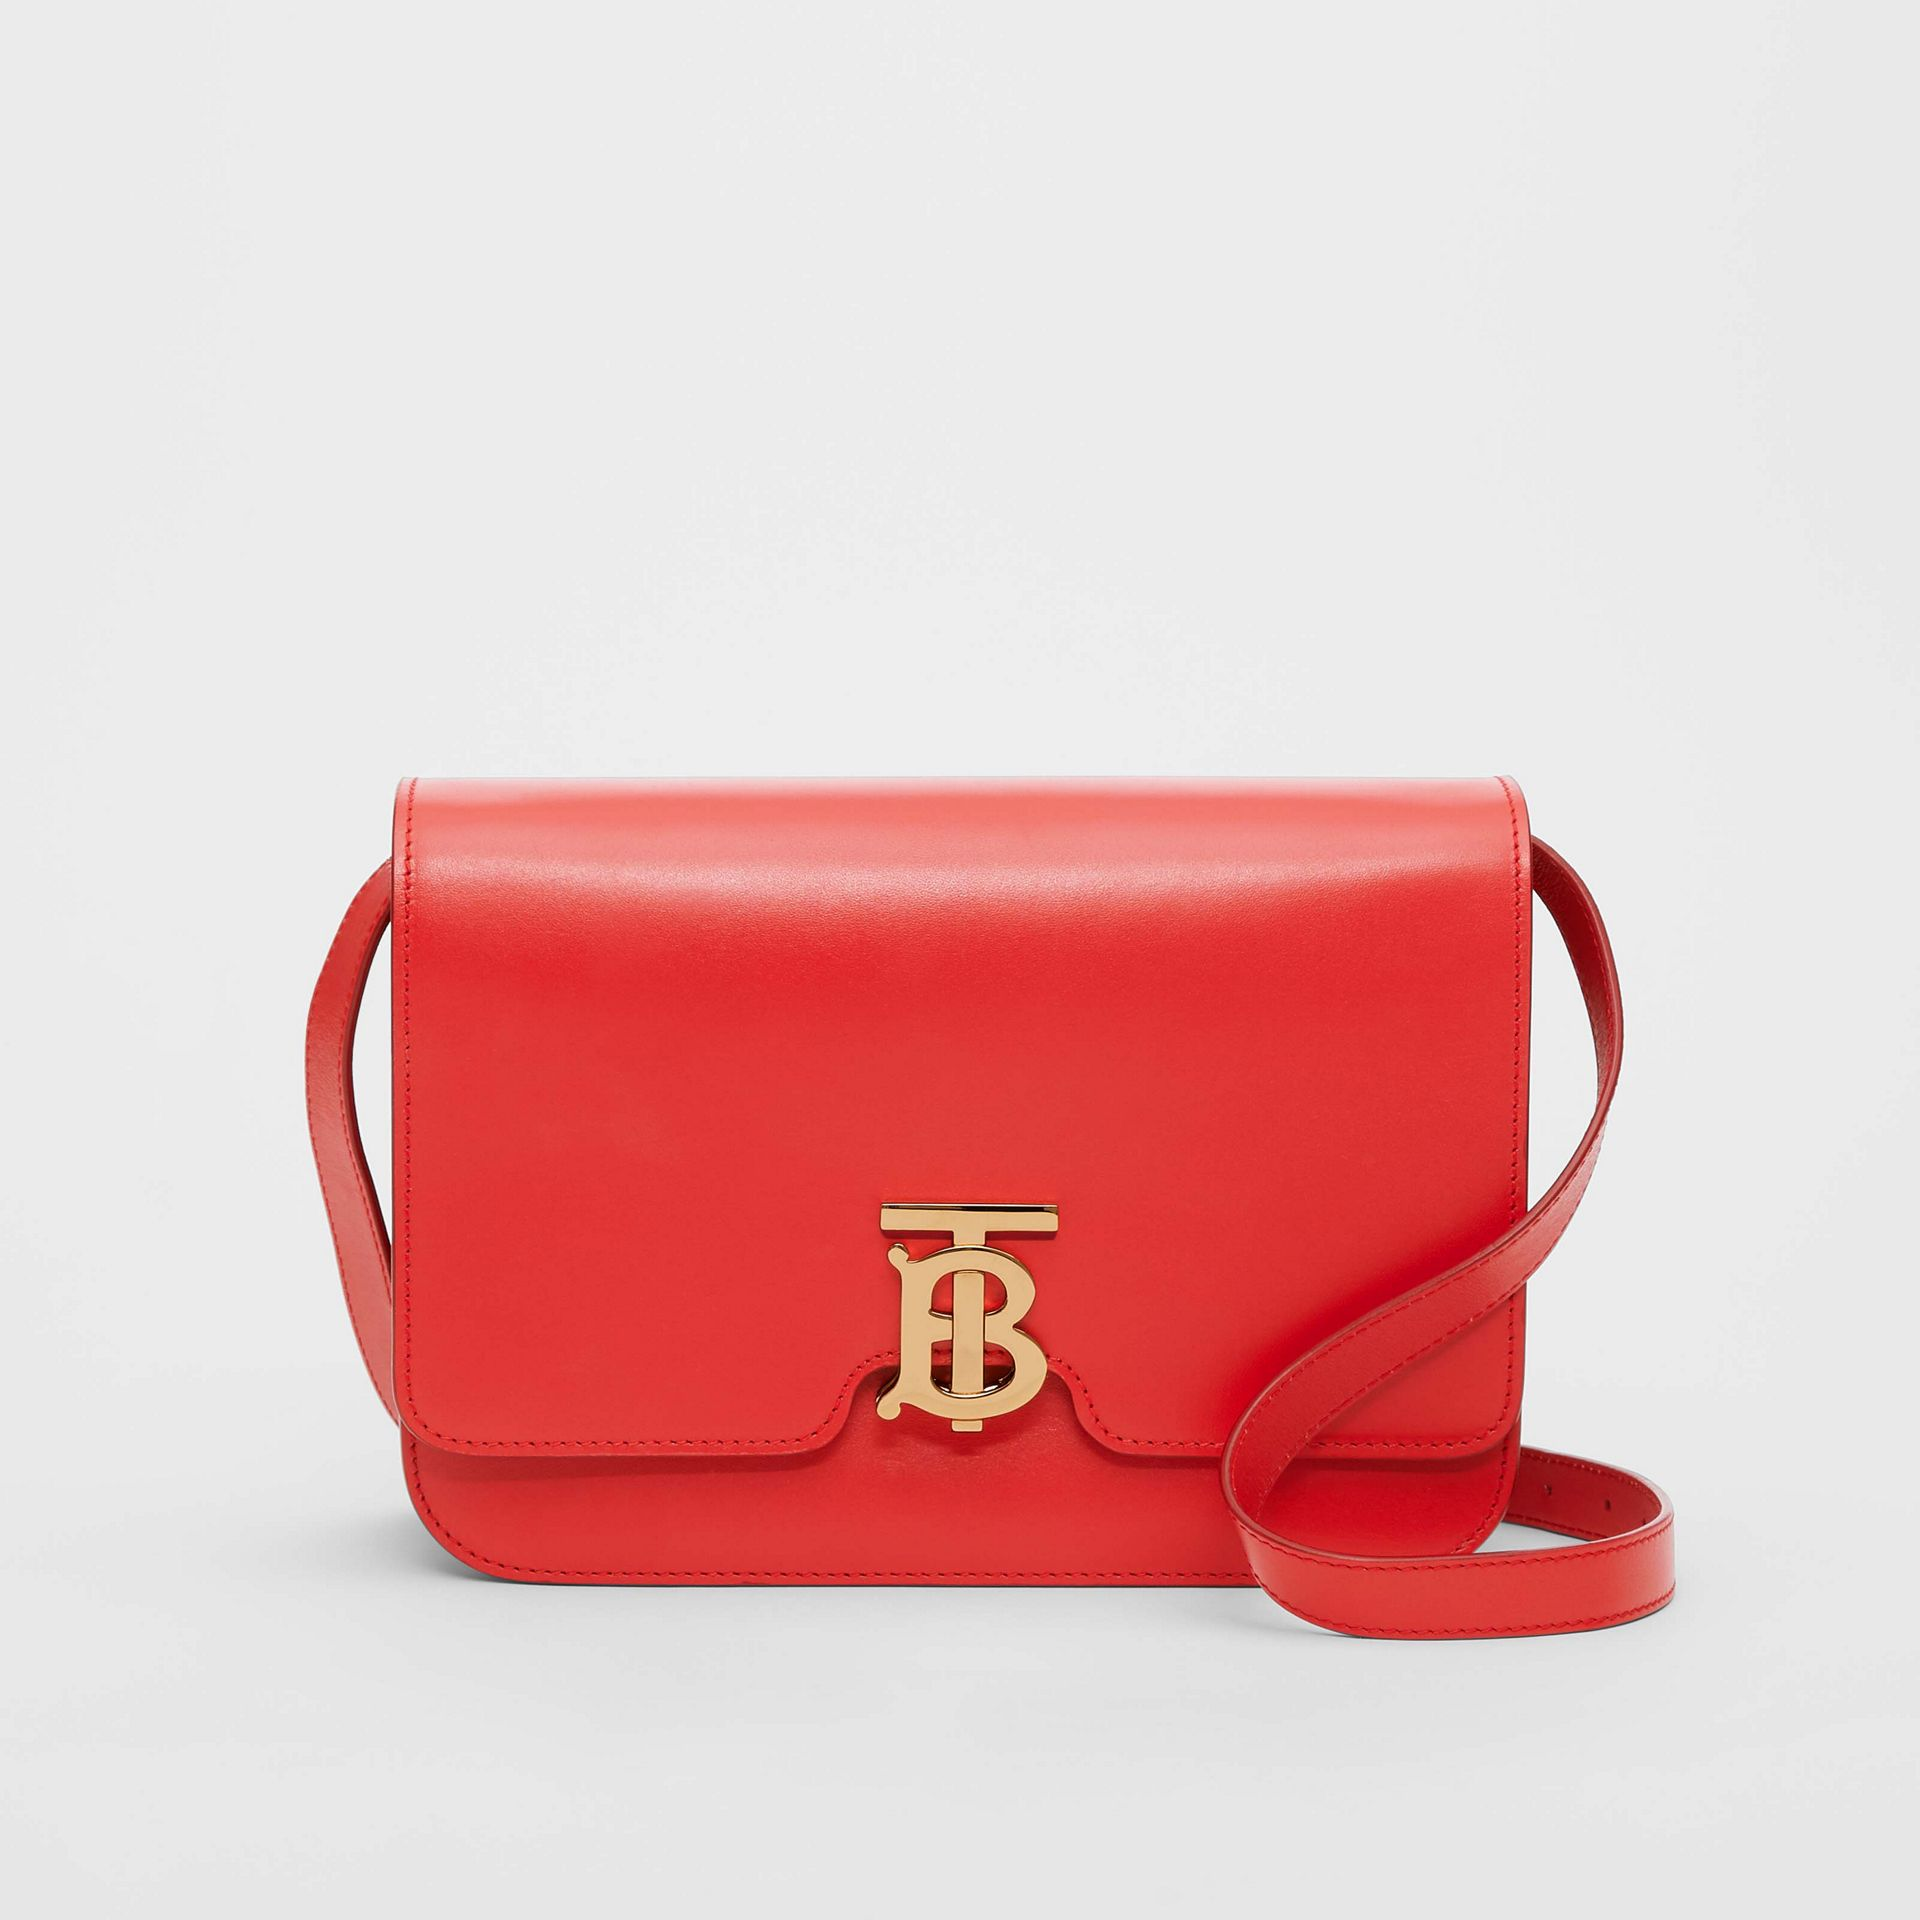 Medium Leather TB Bag in Bright Red - Women | Burberry Australia - gallery image 0